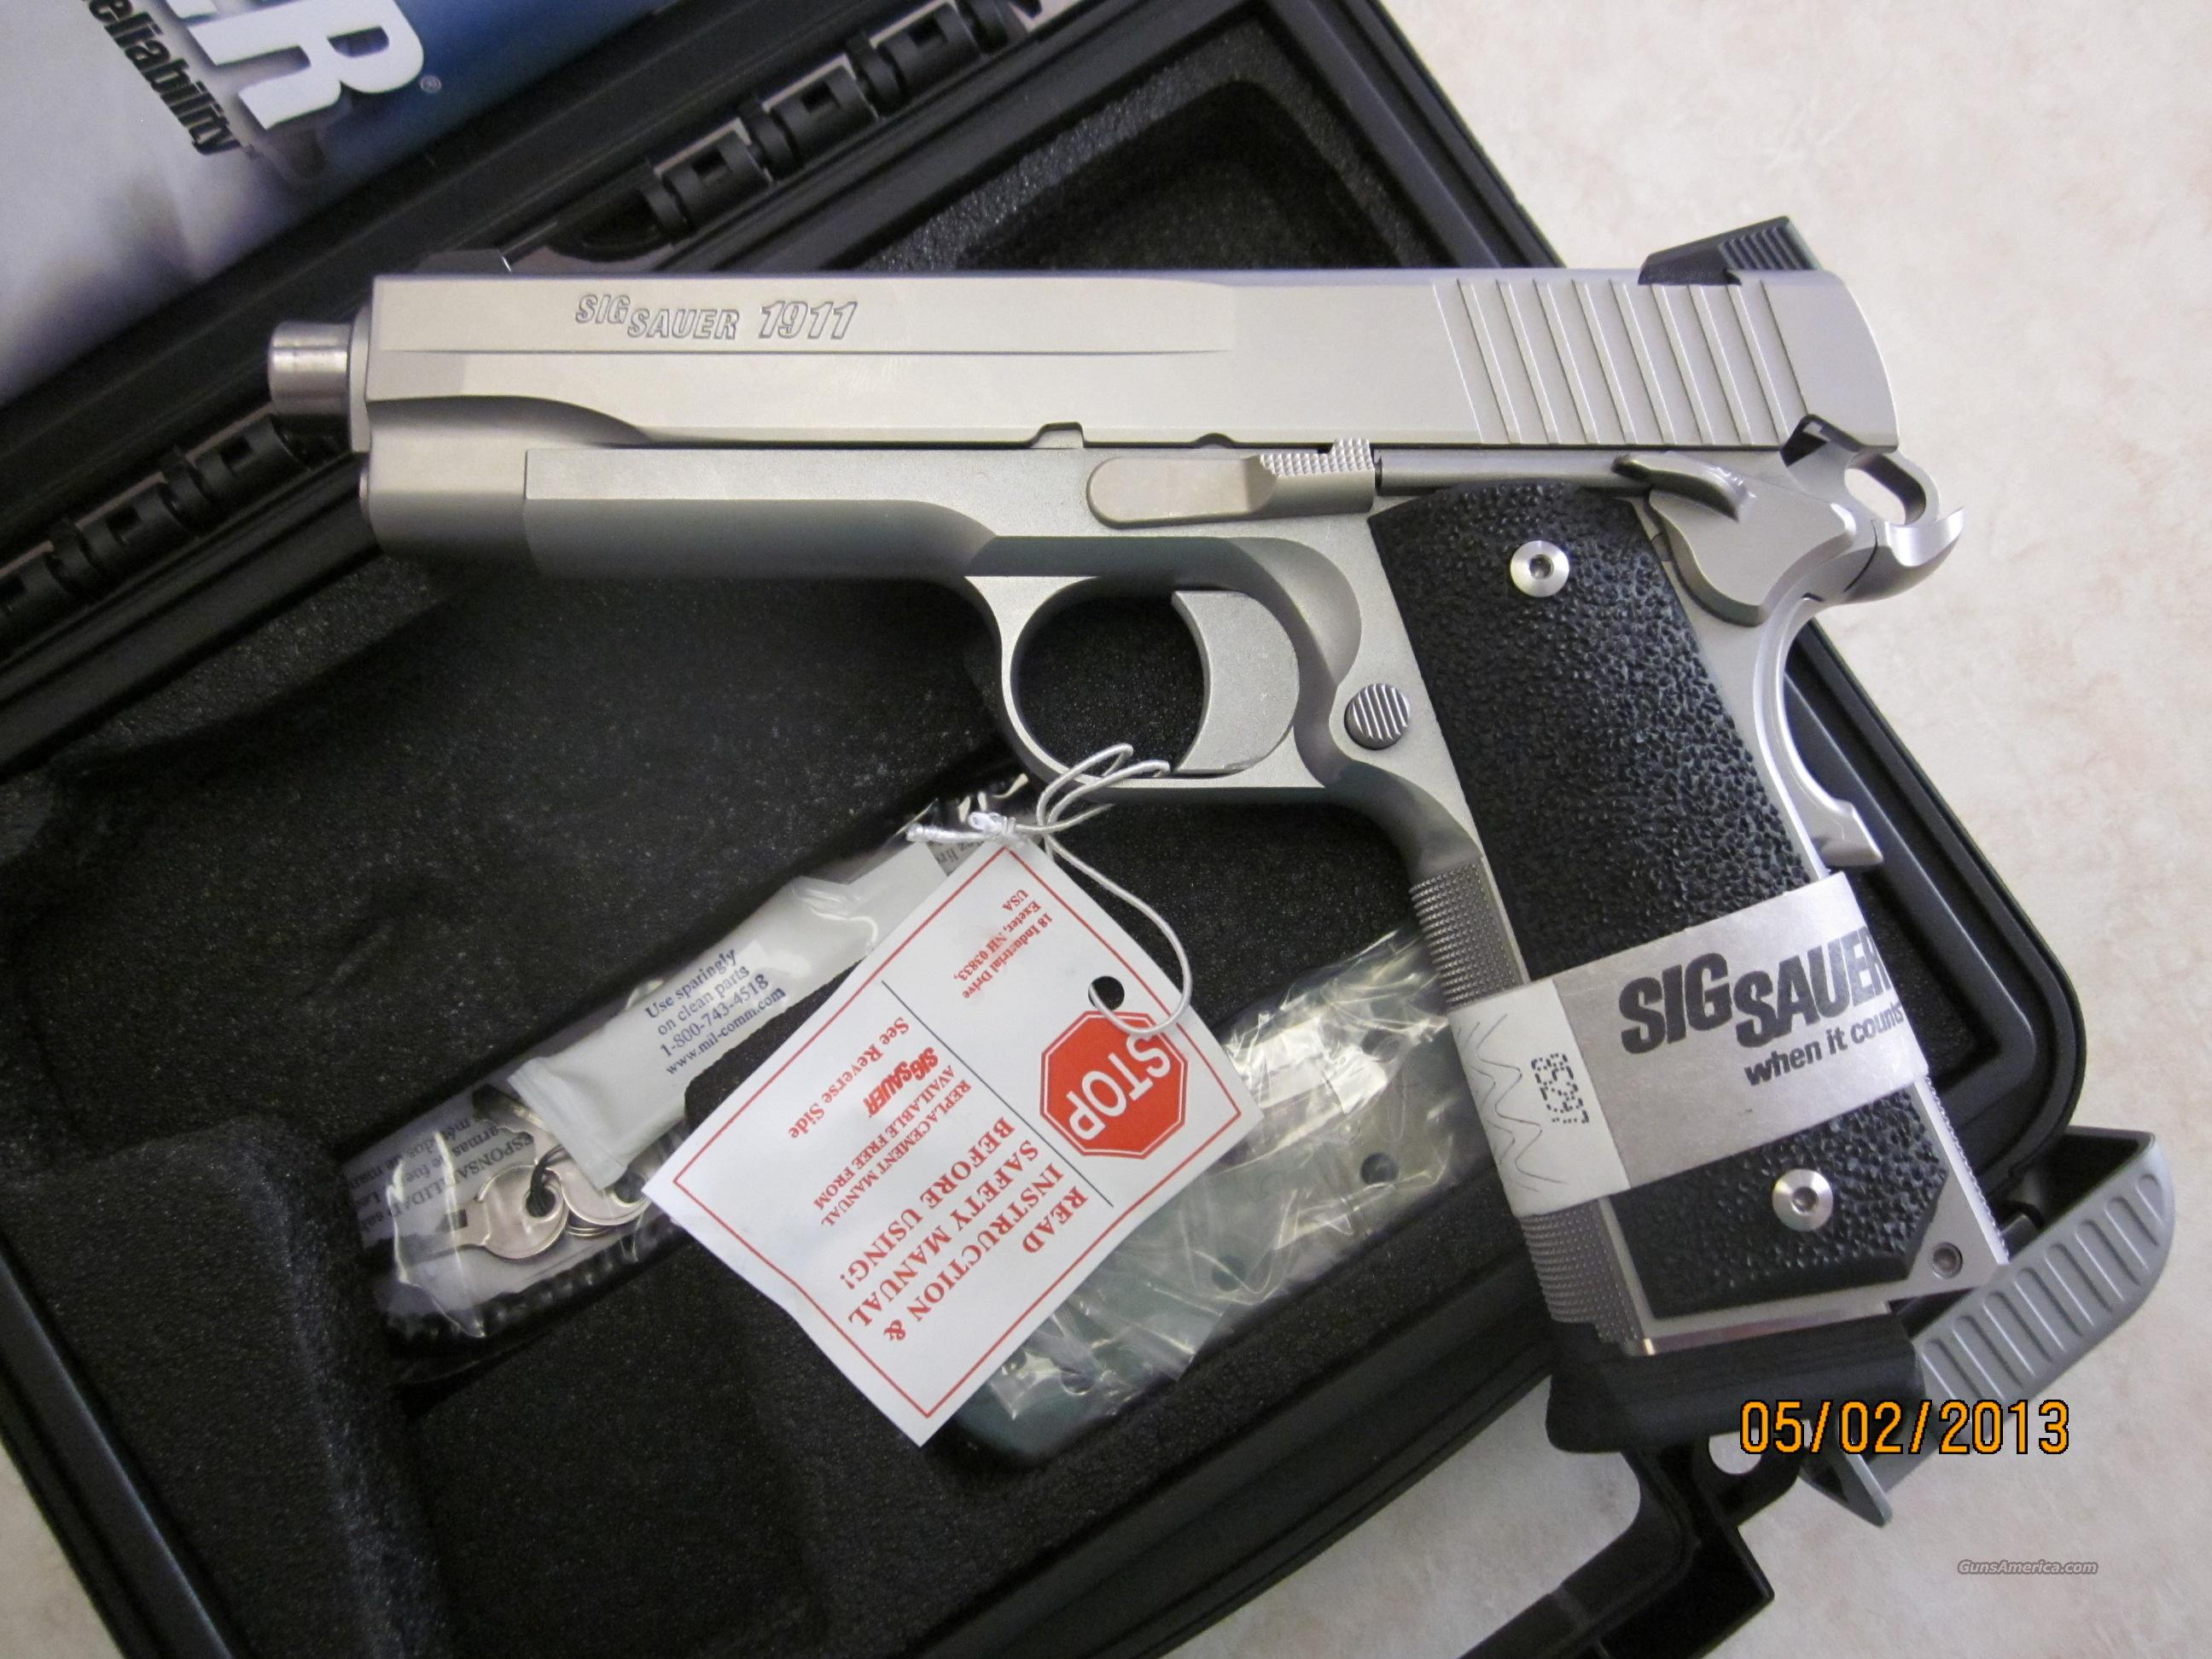 Sig Sauer 1911 XO 45 Stainless 45ACP NIB   Guns > Pistols > Sig - Sauer/Sigarms Pistols > 1911